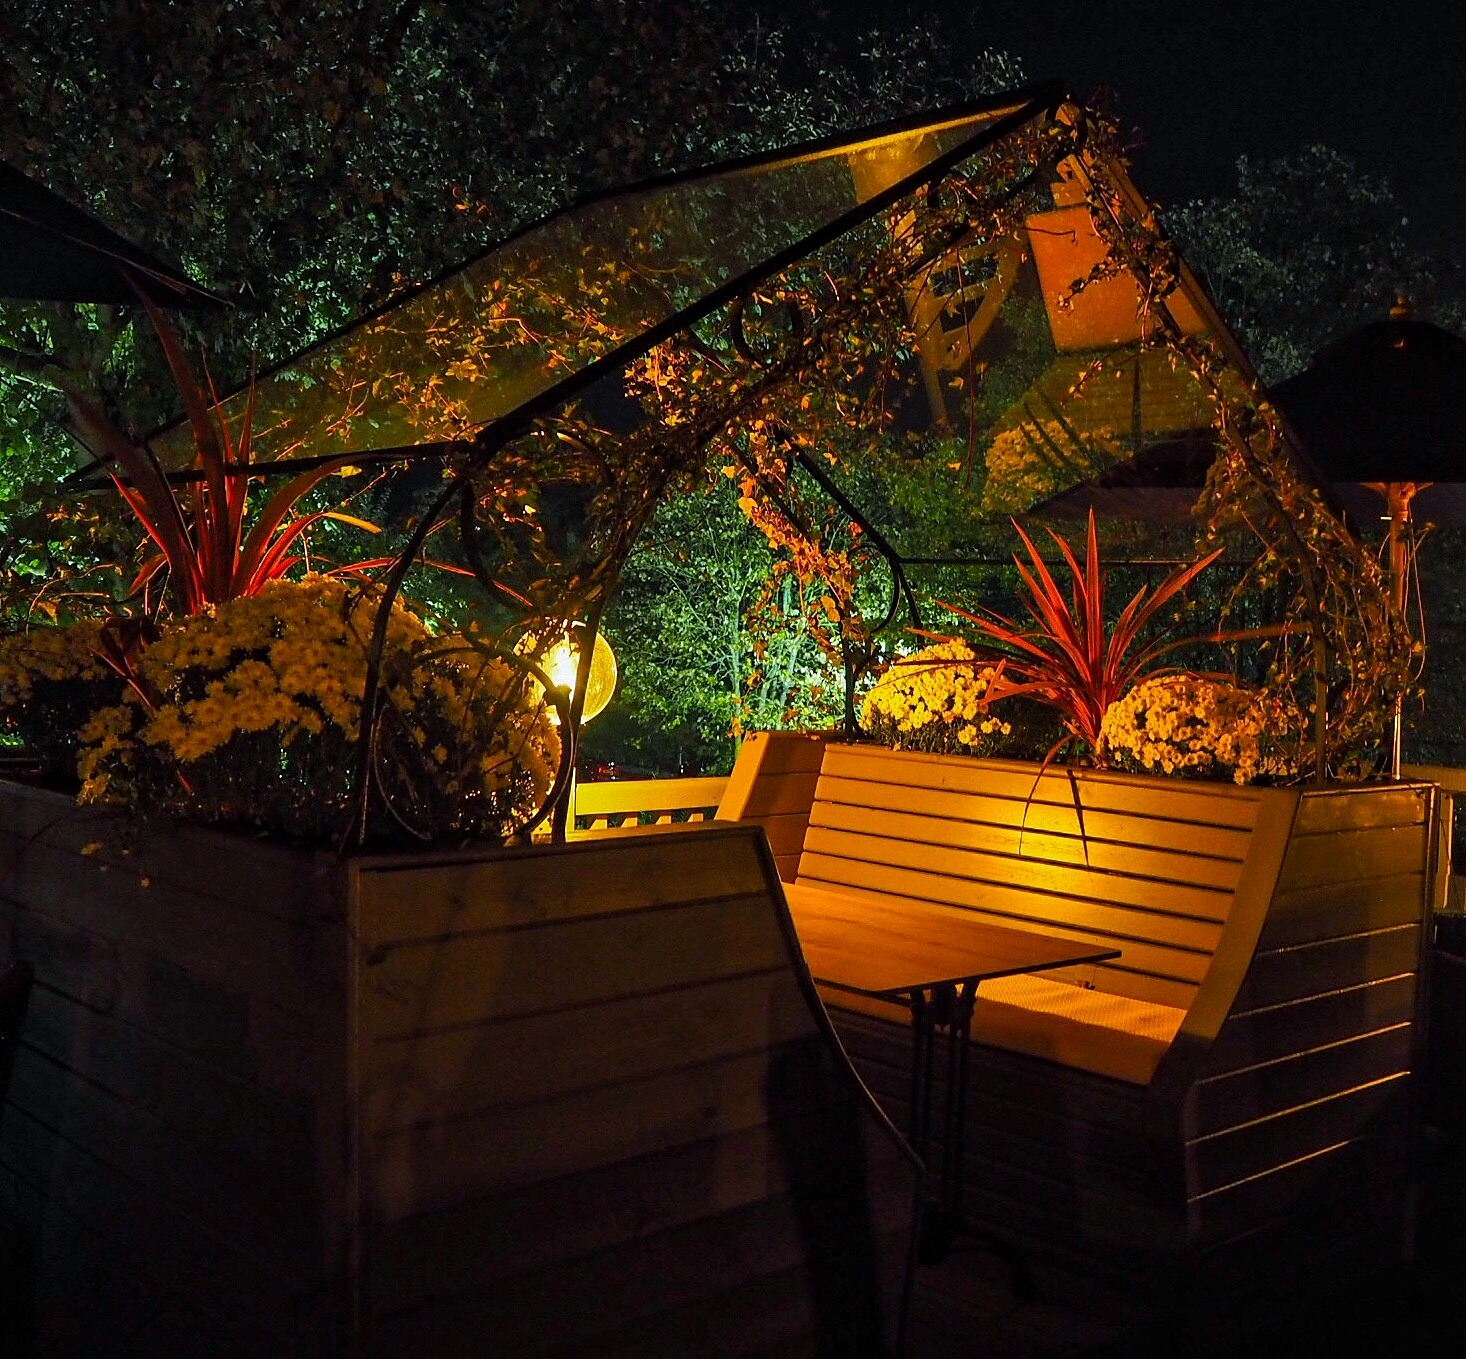 Flowered greenhouse seating pods on the terrace Black Horse Pub Great Linford Milton Keynes